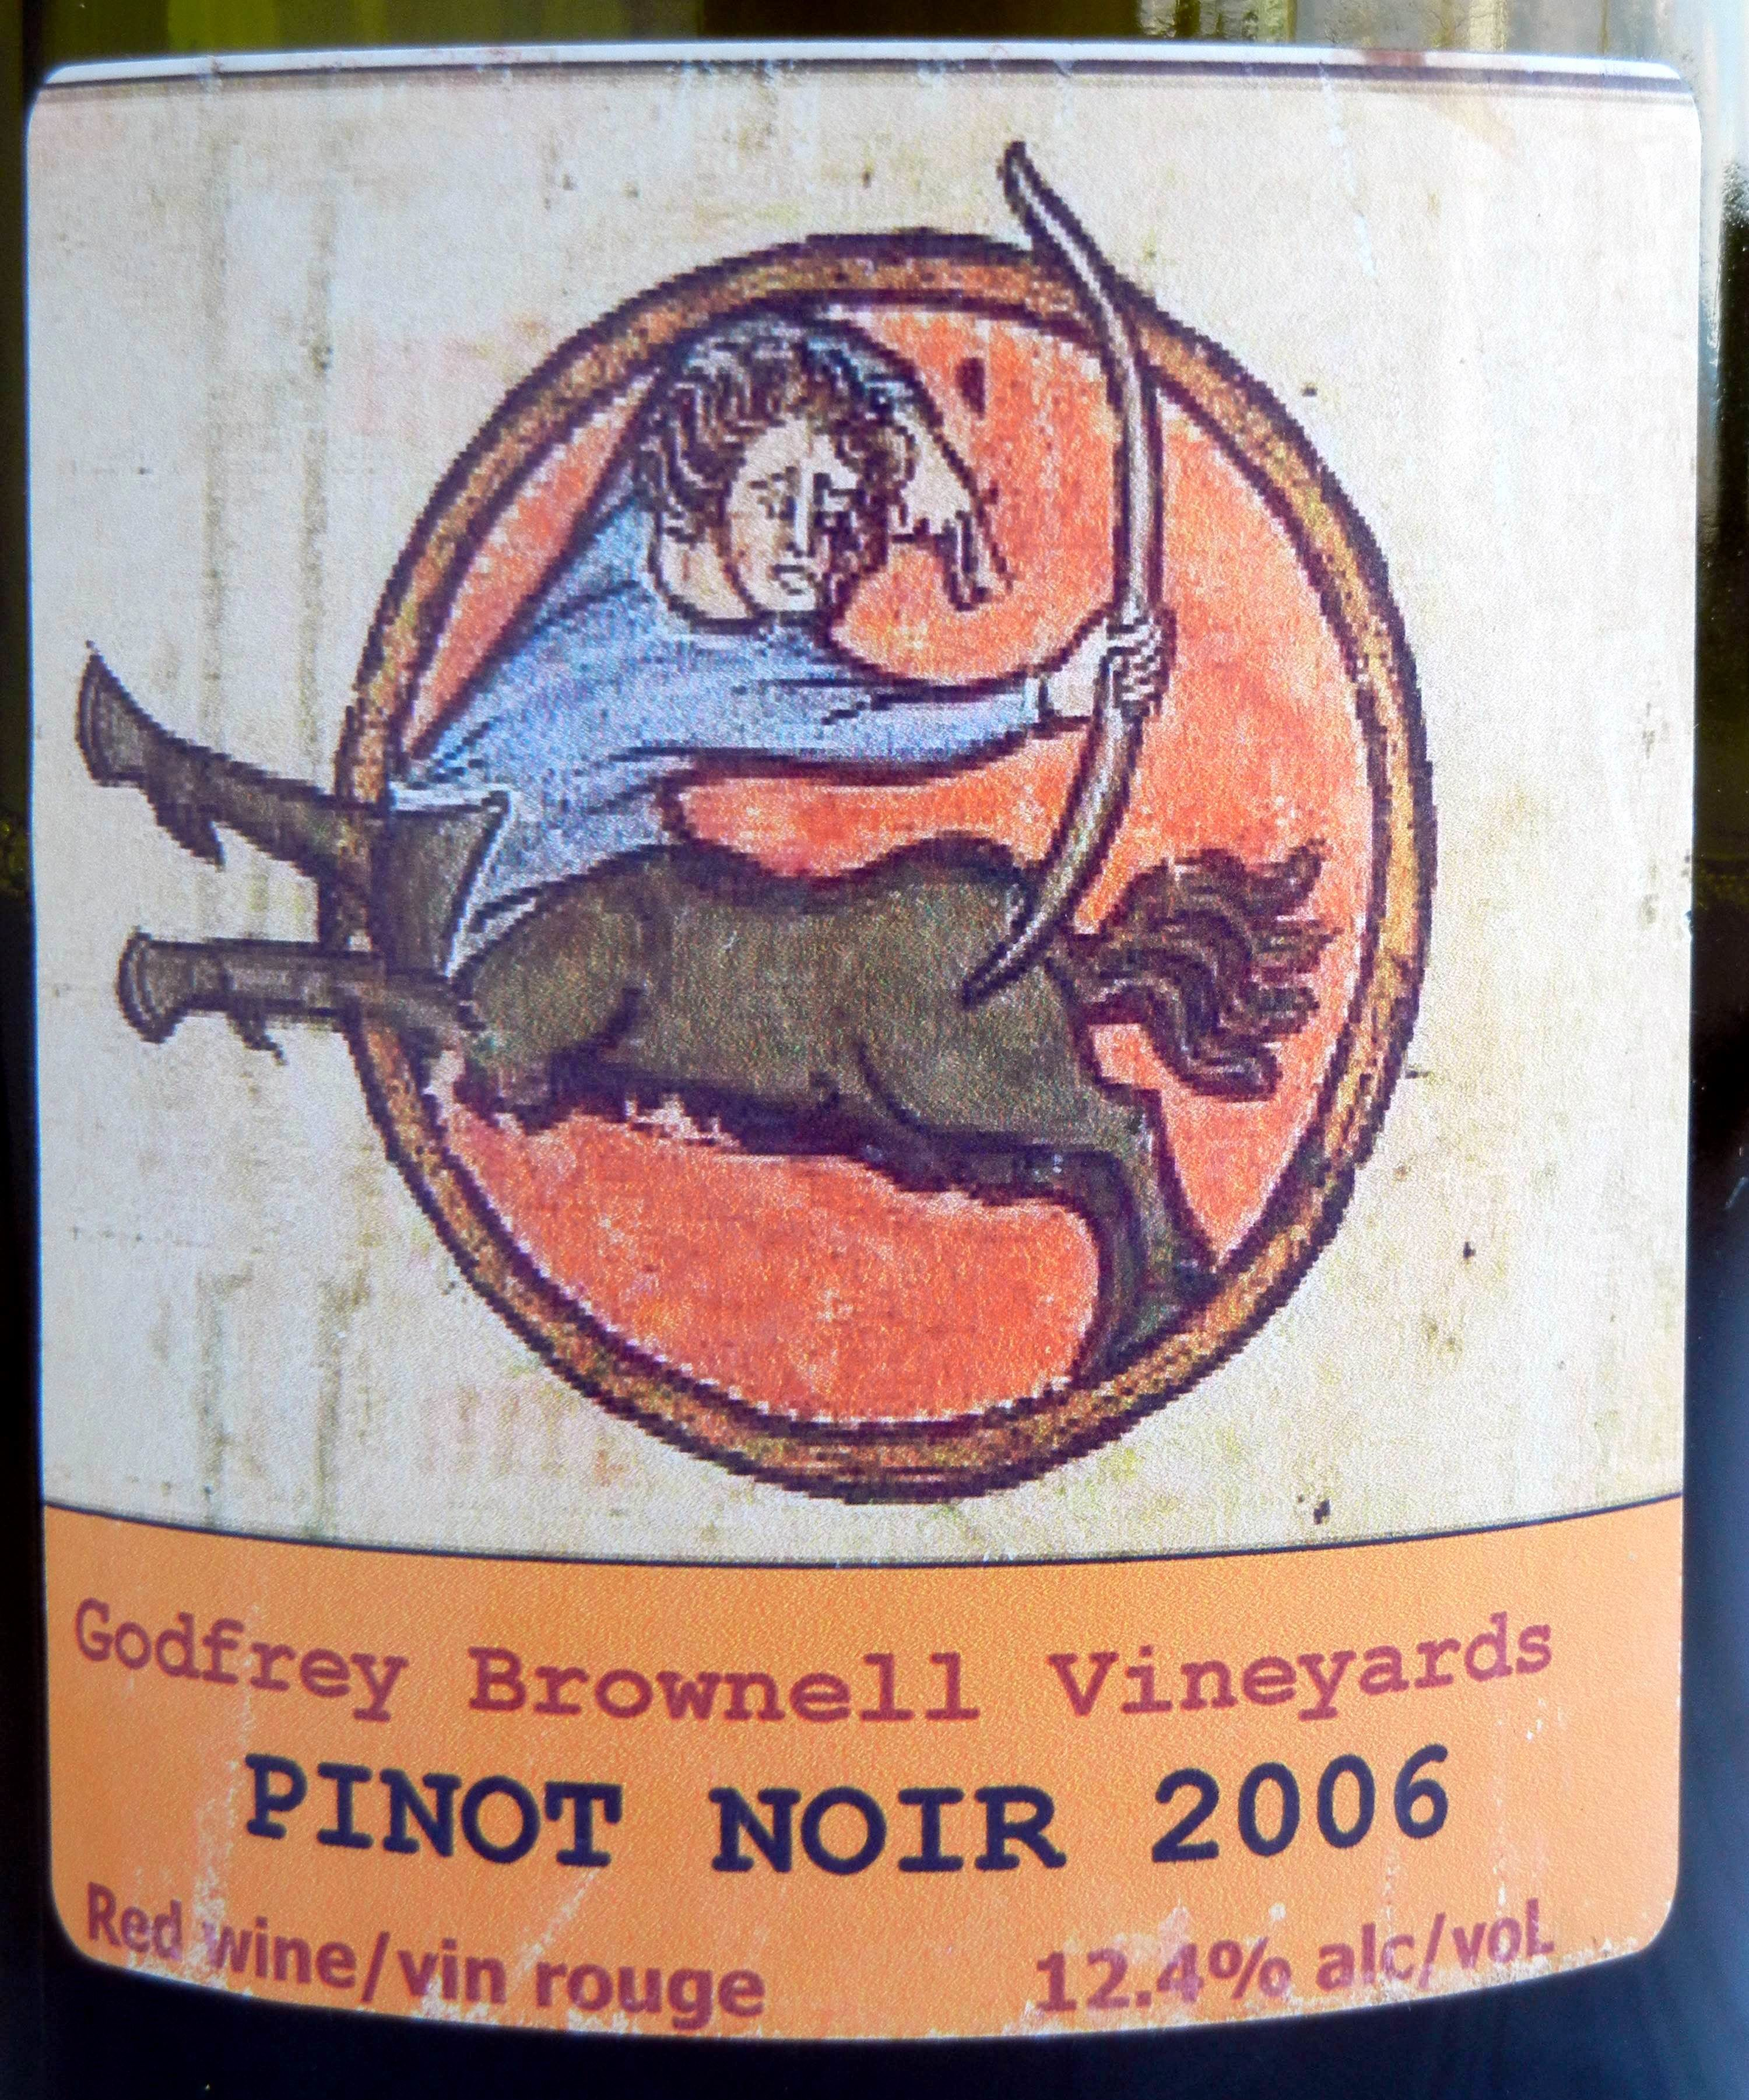 Godfrey Brownell Pinot Noir 2006 Label - BC Pinot Noir Tasting Review 12